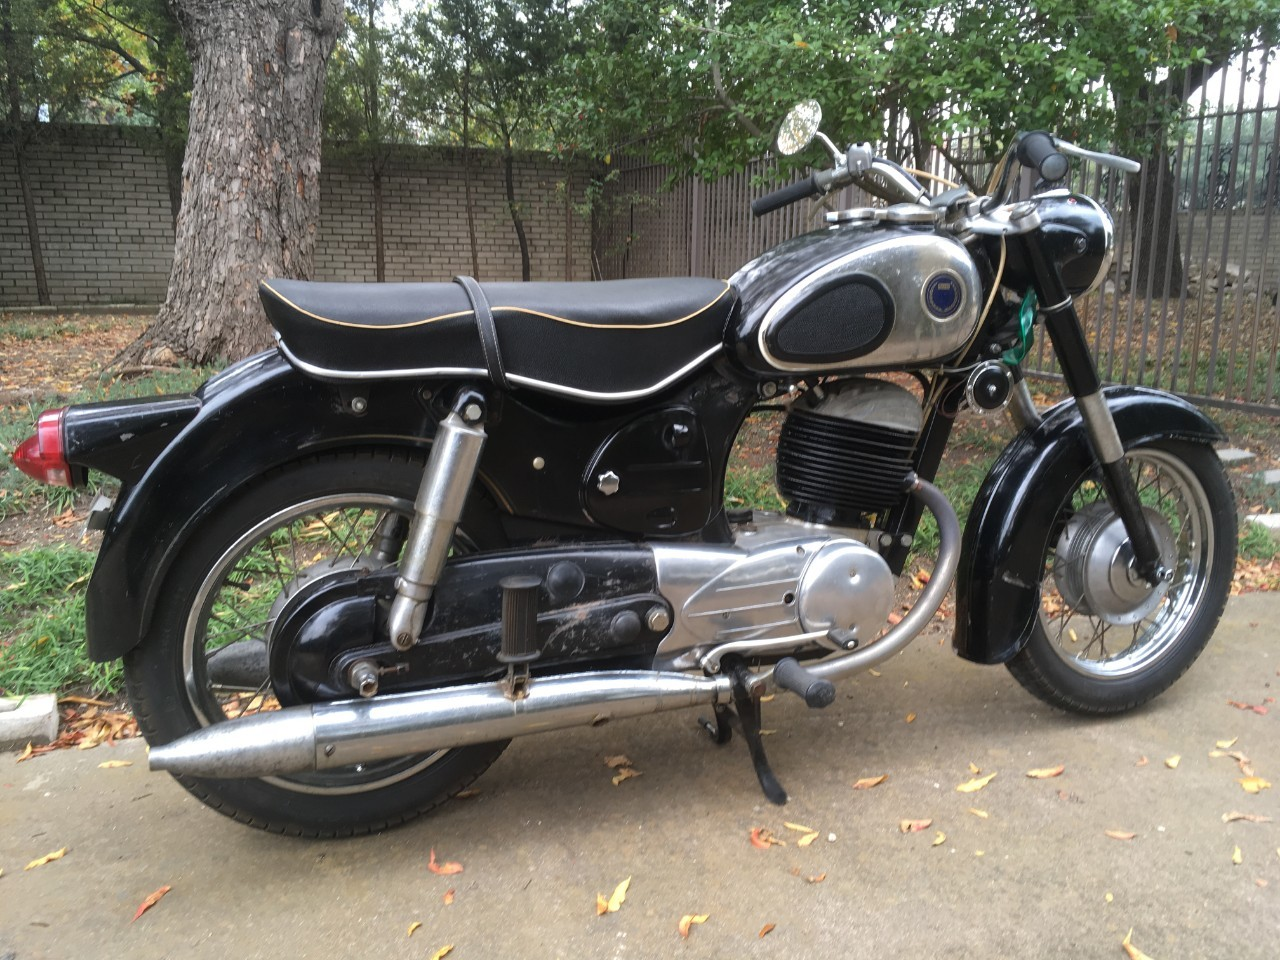 434bb8aeefb70 Dallas - 21 Motorcycles Near Me For Sale - Cycle Trader